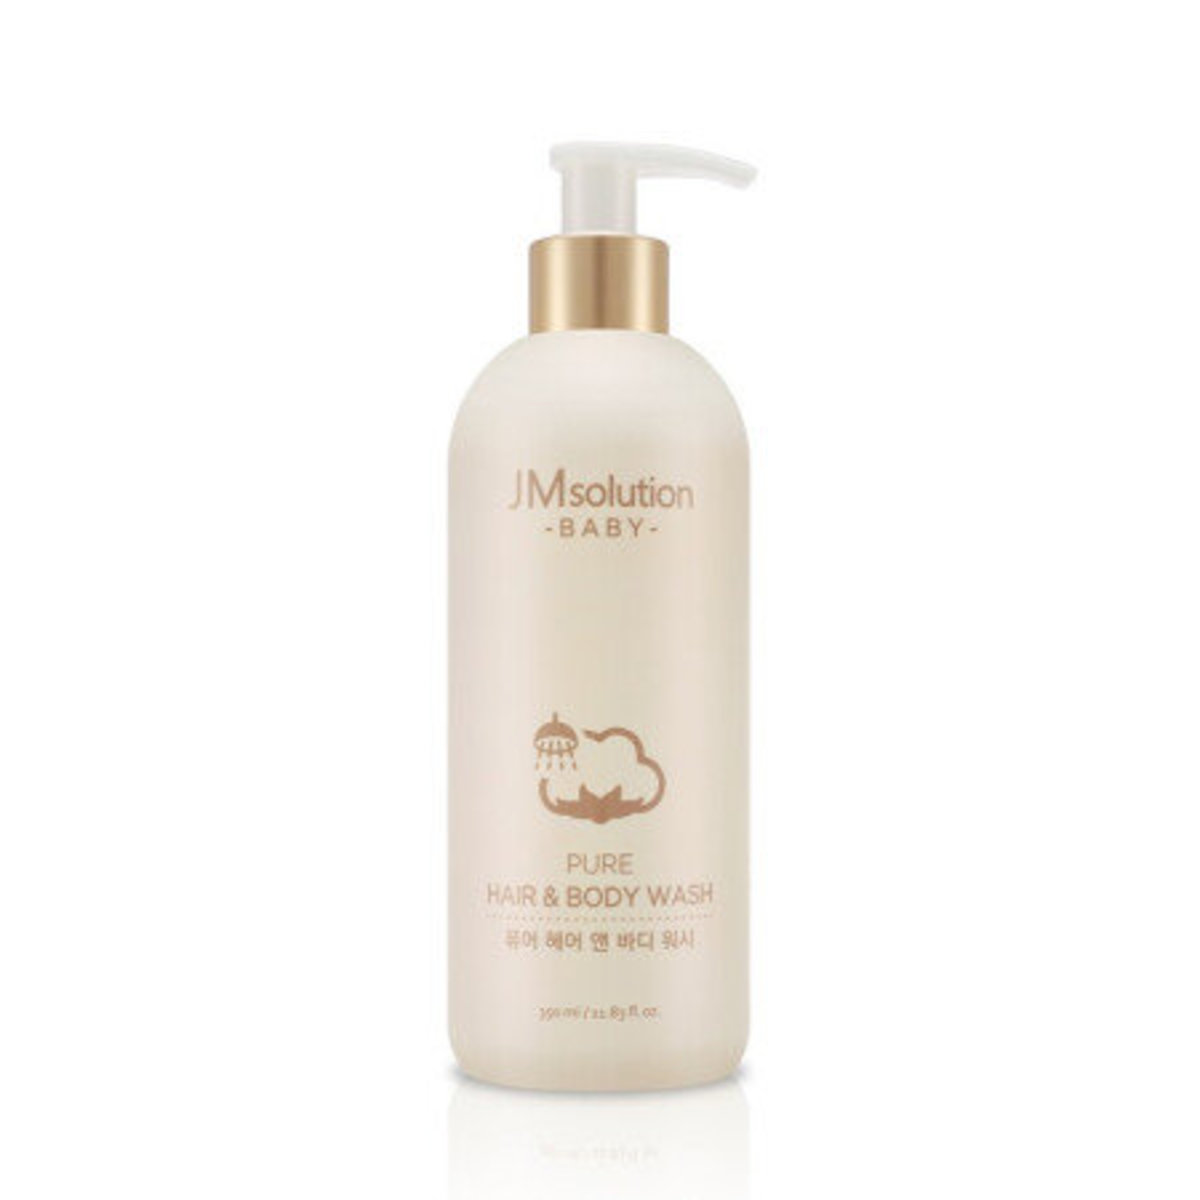 BABY PURE HAIR & BODY WASH 350ml